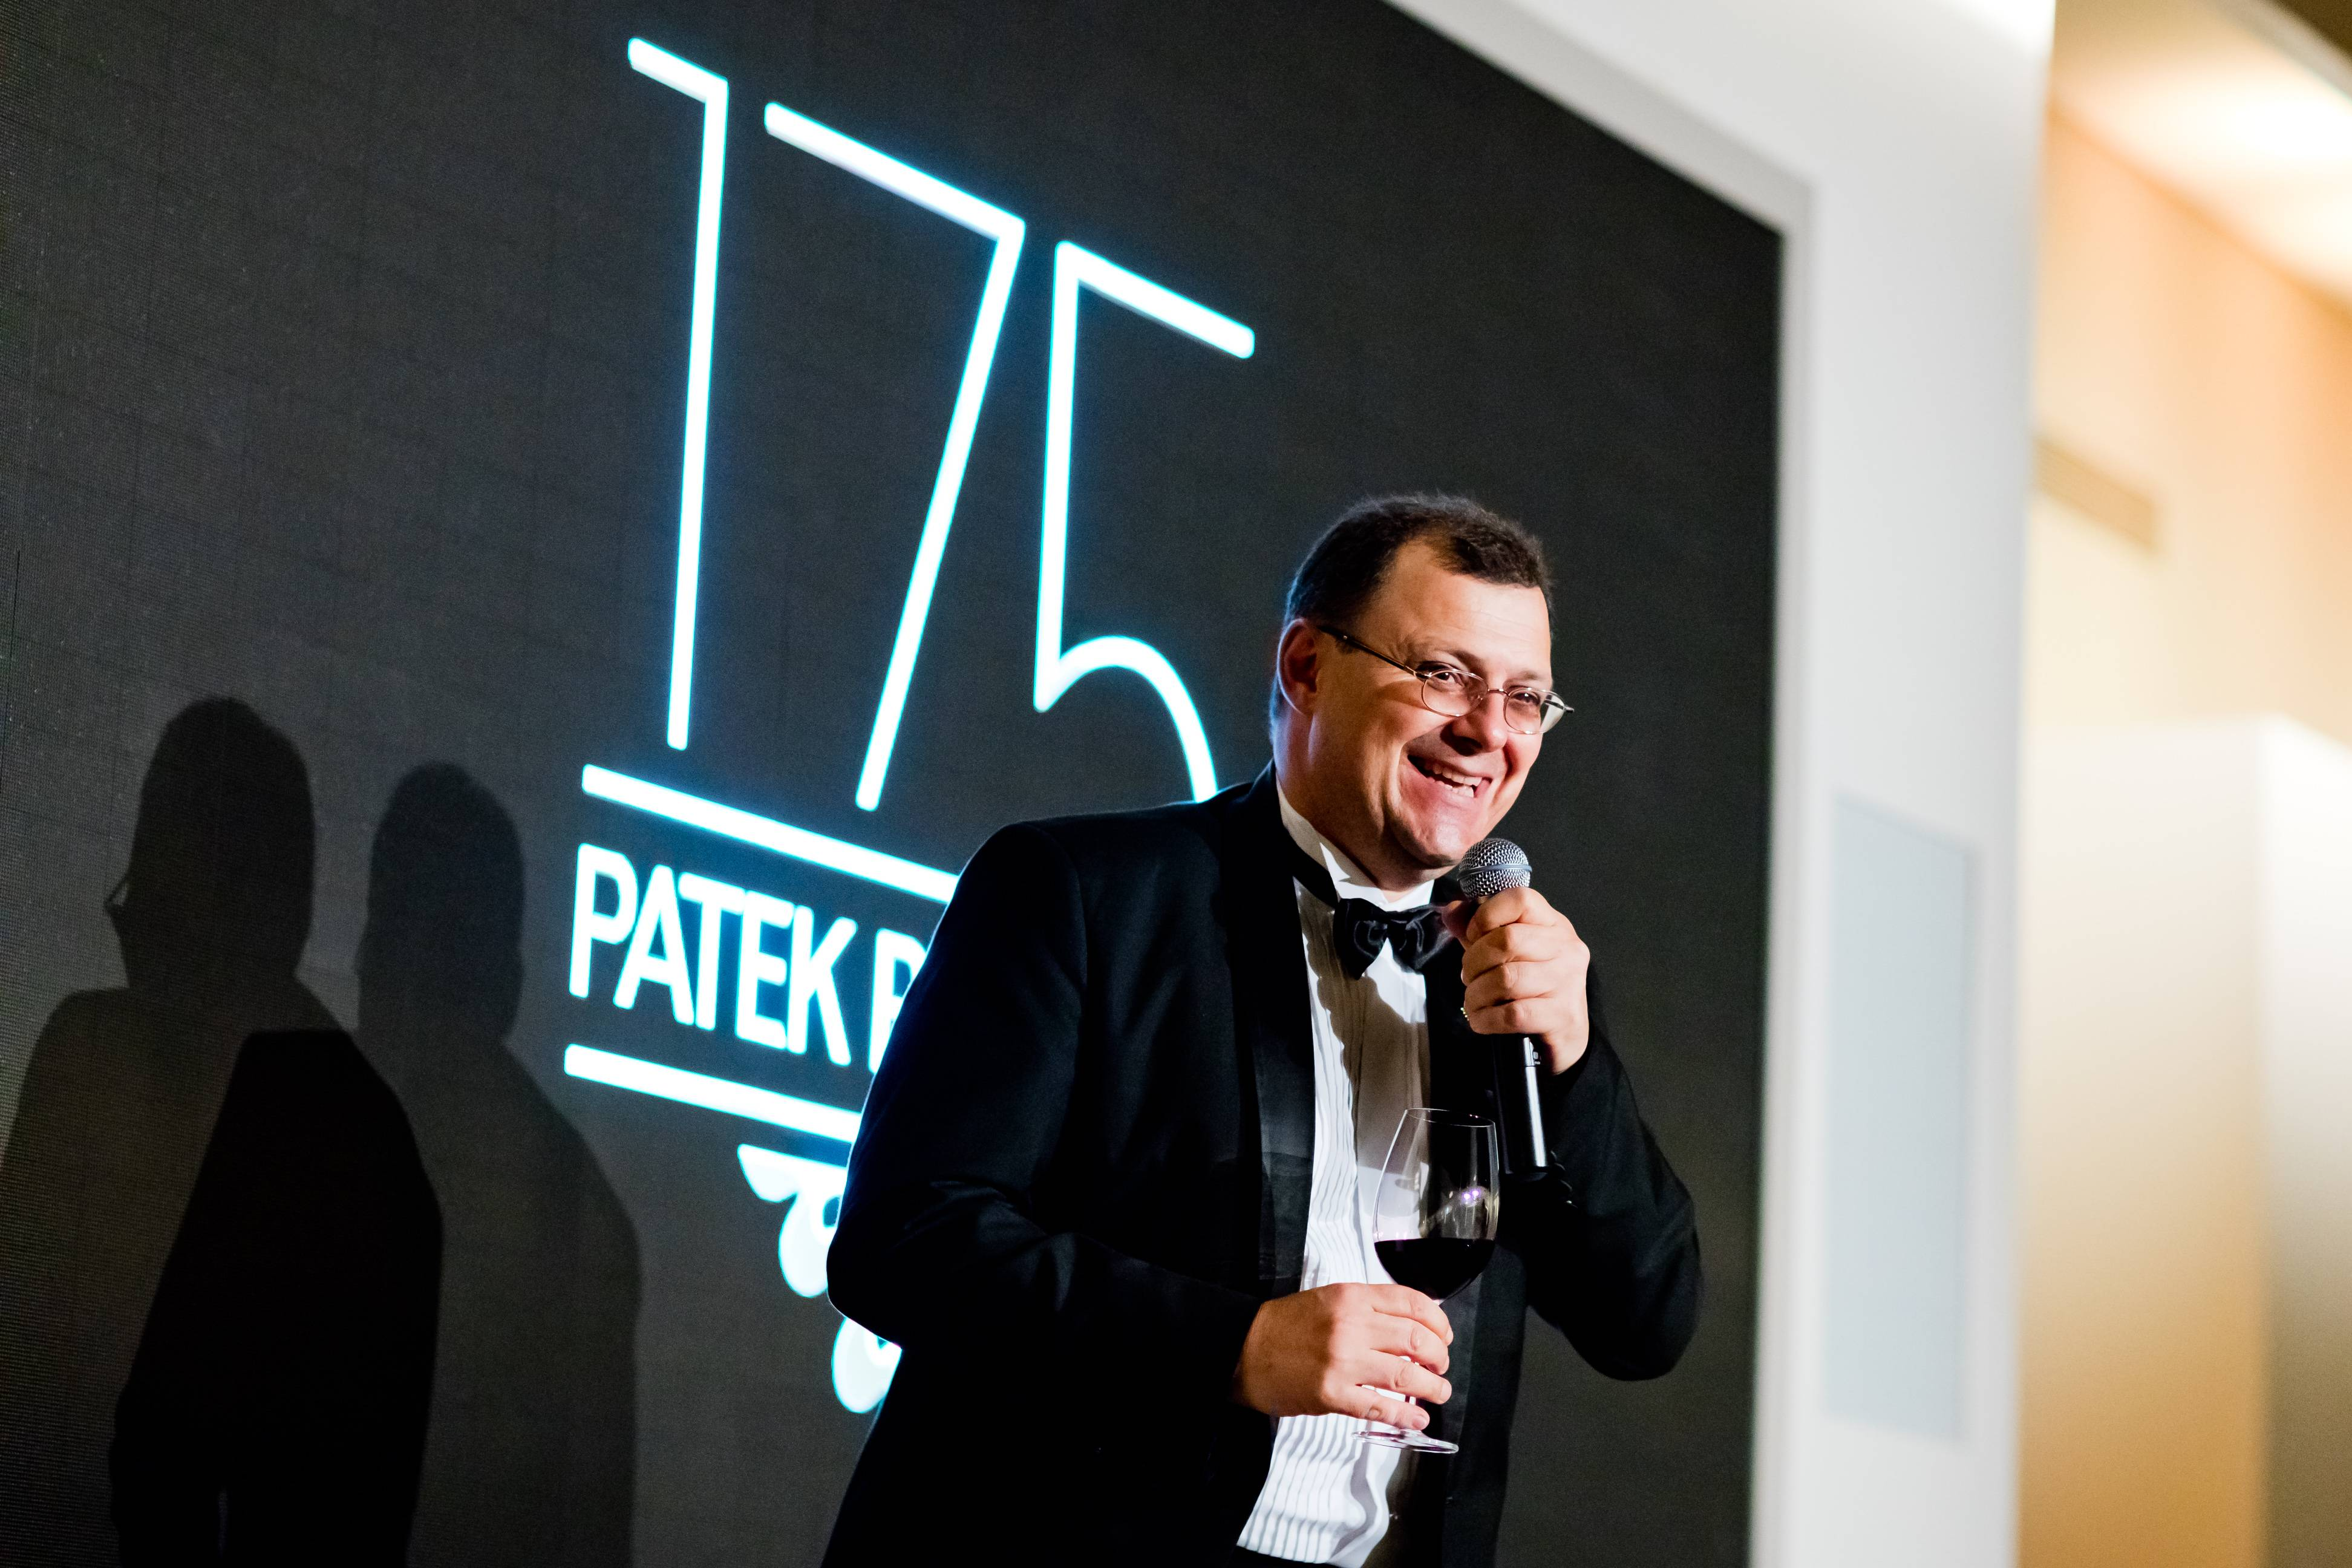 Thierry Stern, President of Patek Philippe